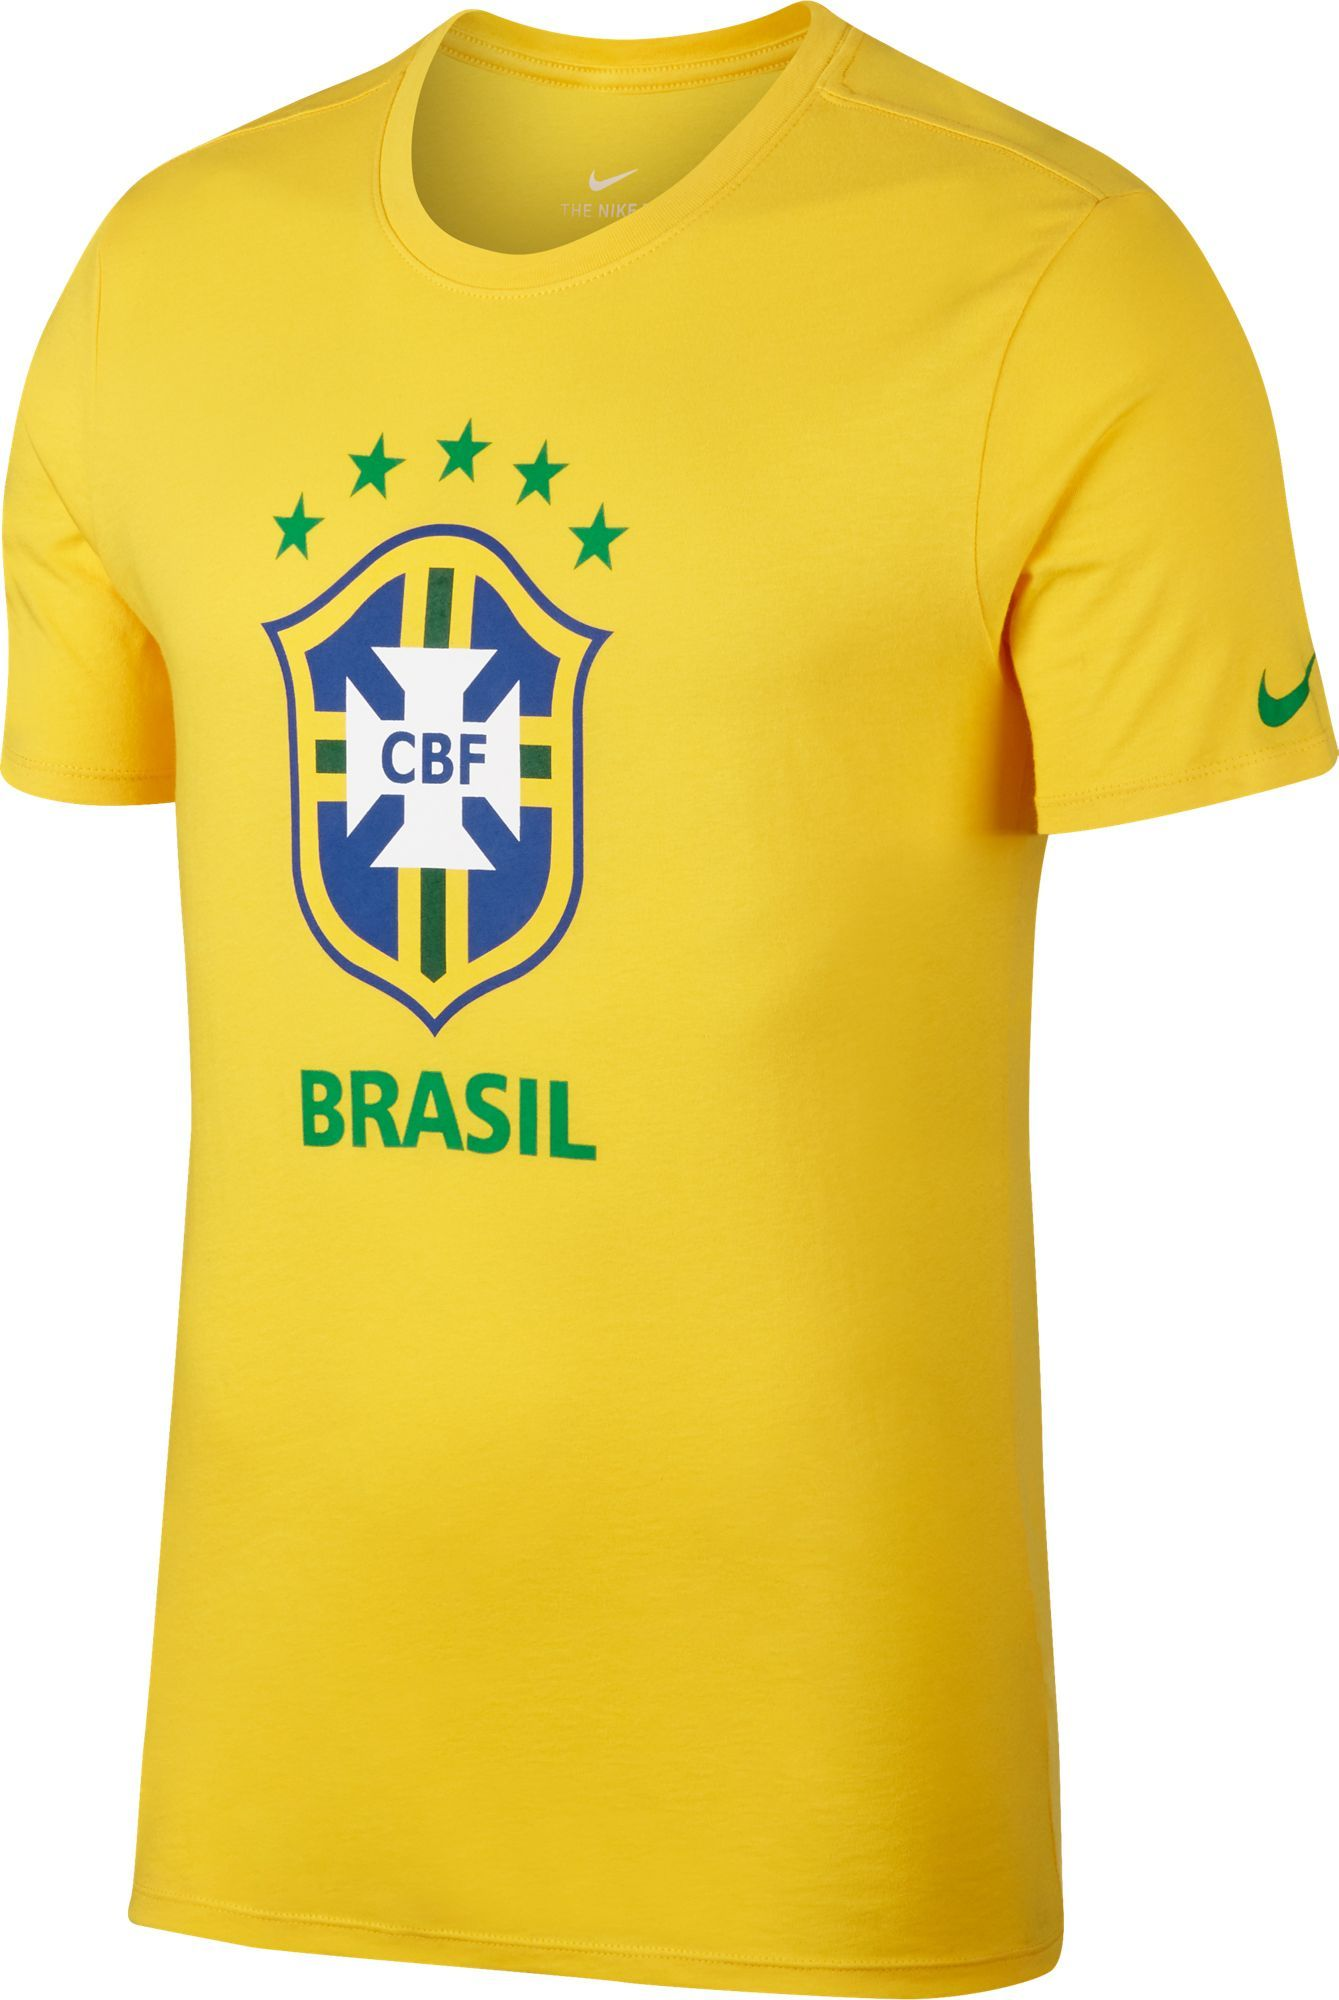 03f6408d0 Nike Men s 2018 FIFA World Cup Brazil Crest Yellow T-Shirt ...